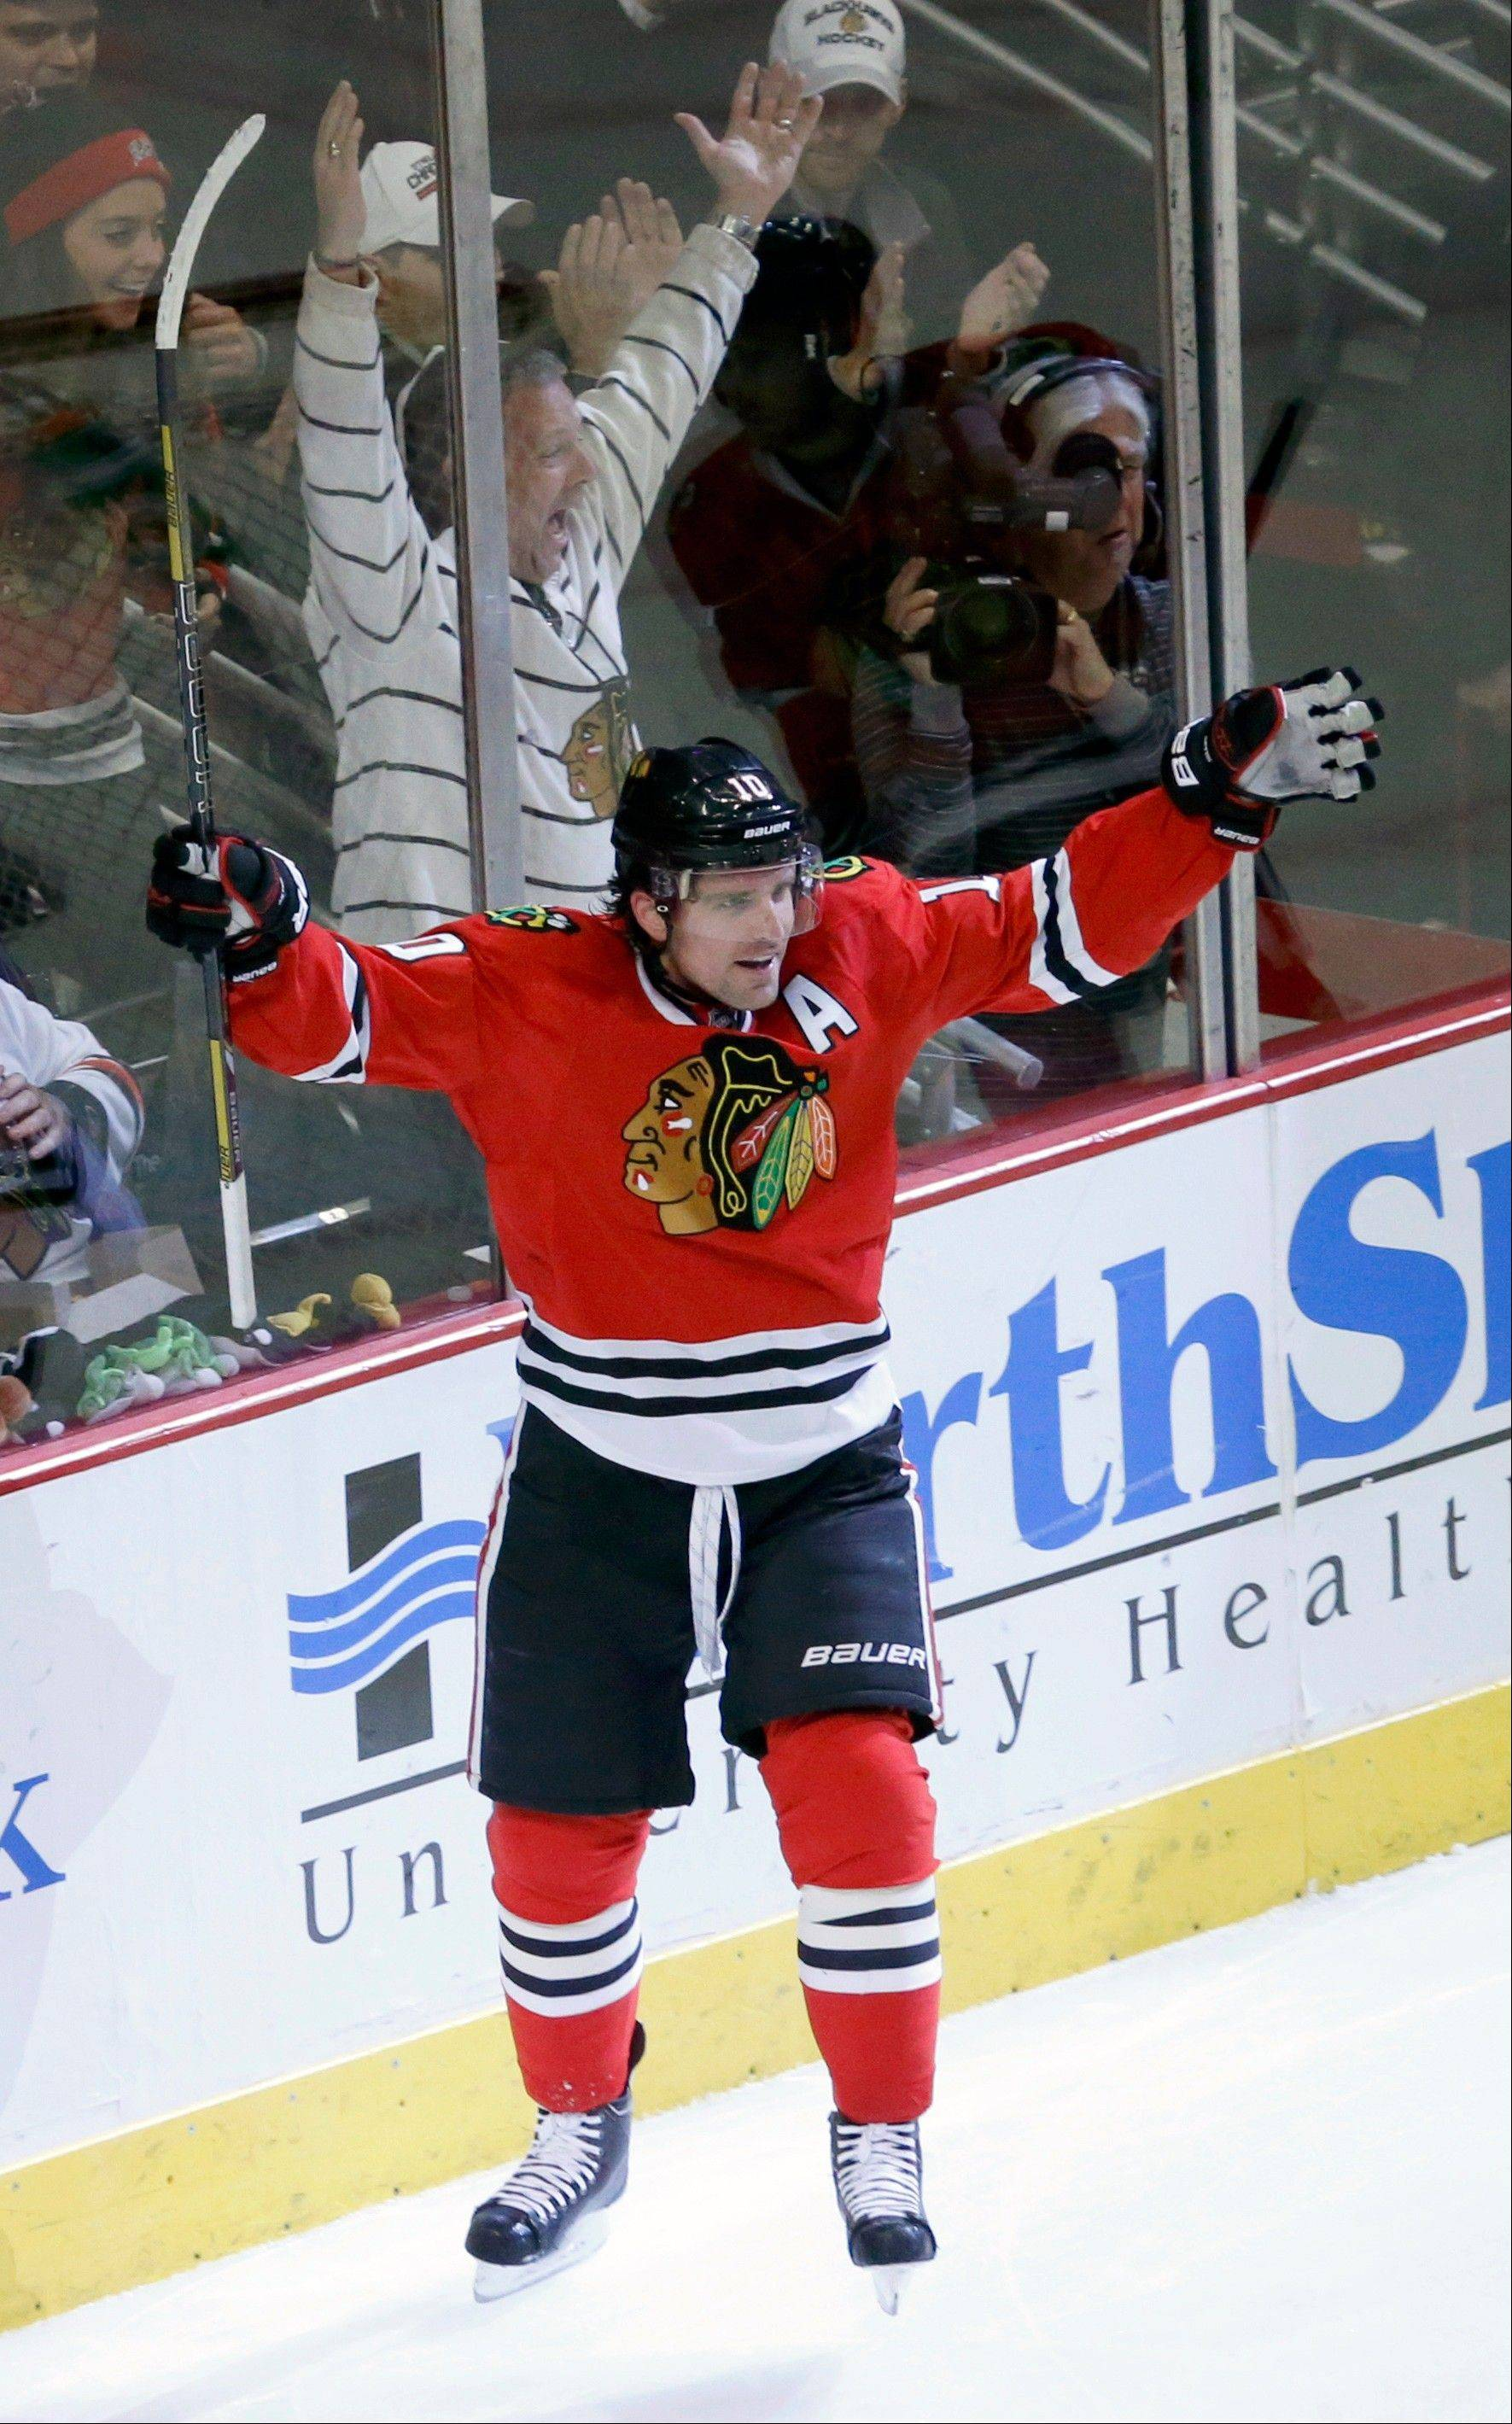 Blackhawks left wing Patrick Sharp celebrates his goal during the first period of Friday's game against the Colorado Avalanche at the United Center.